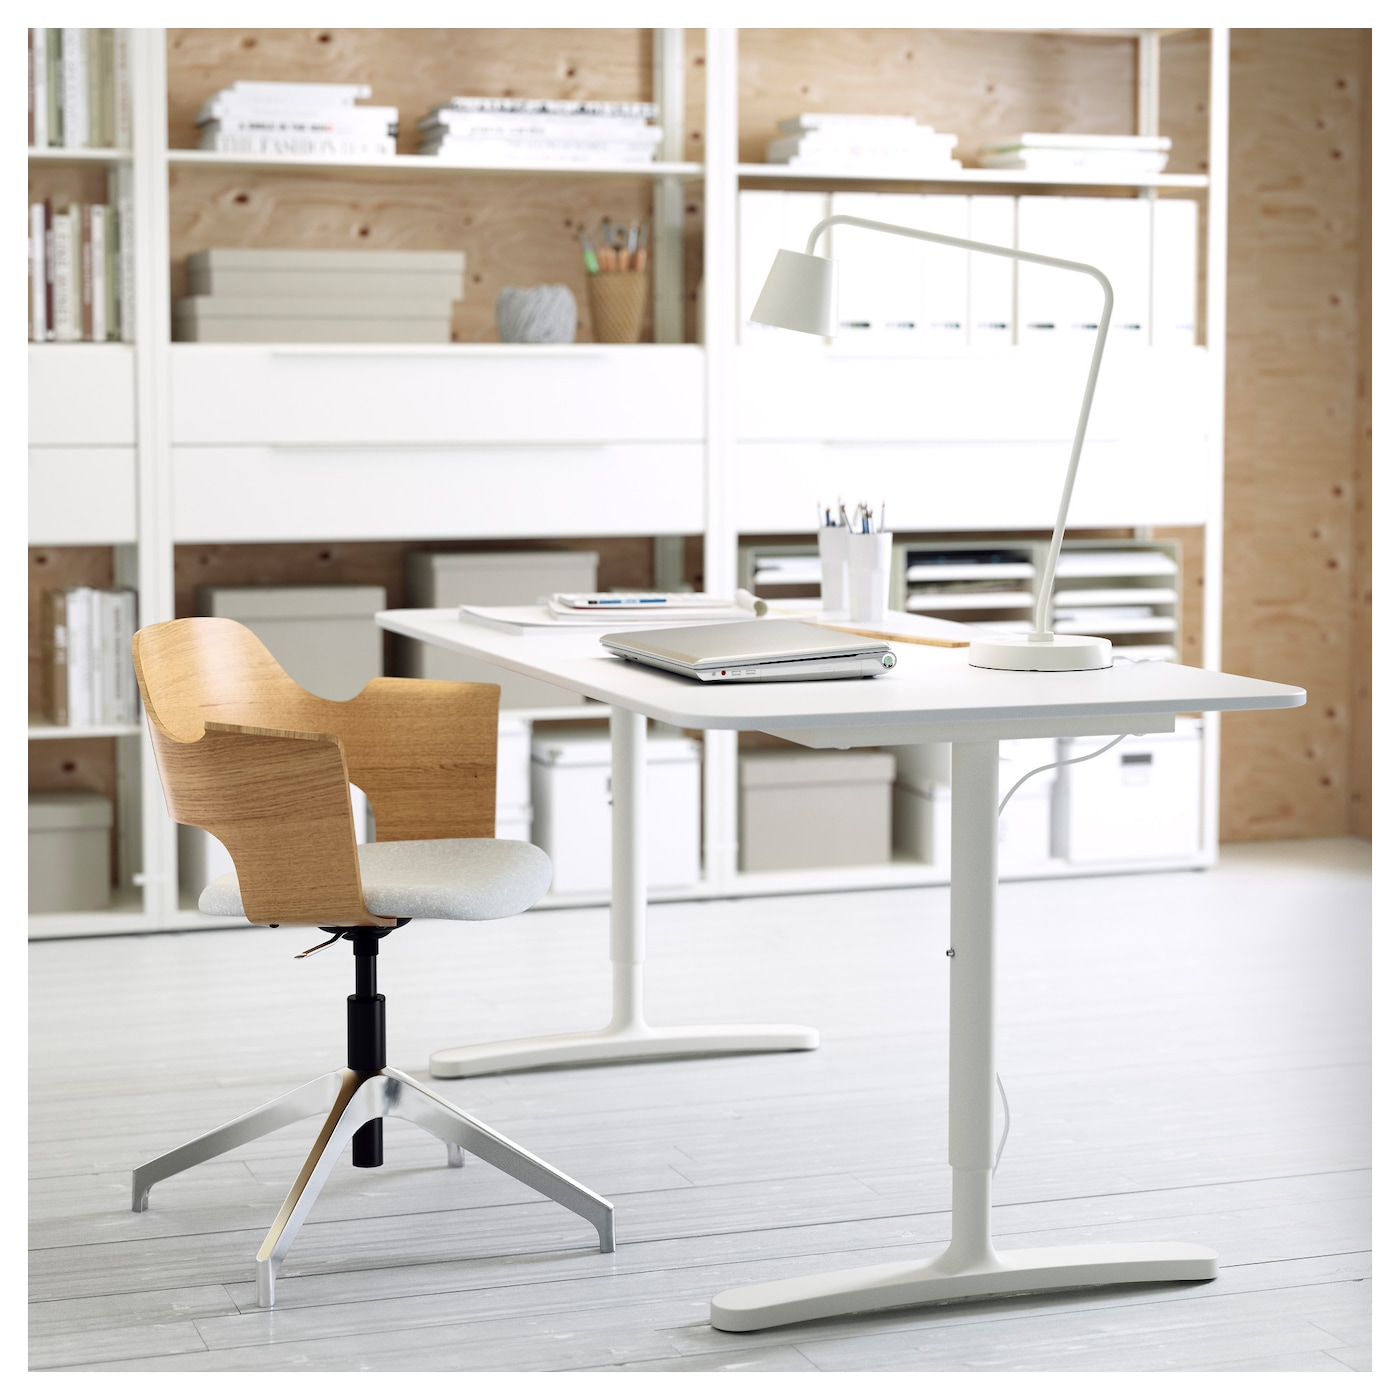 Ikea fice Desks For Home IKEA Home Planner PLANNERS Build Your